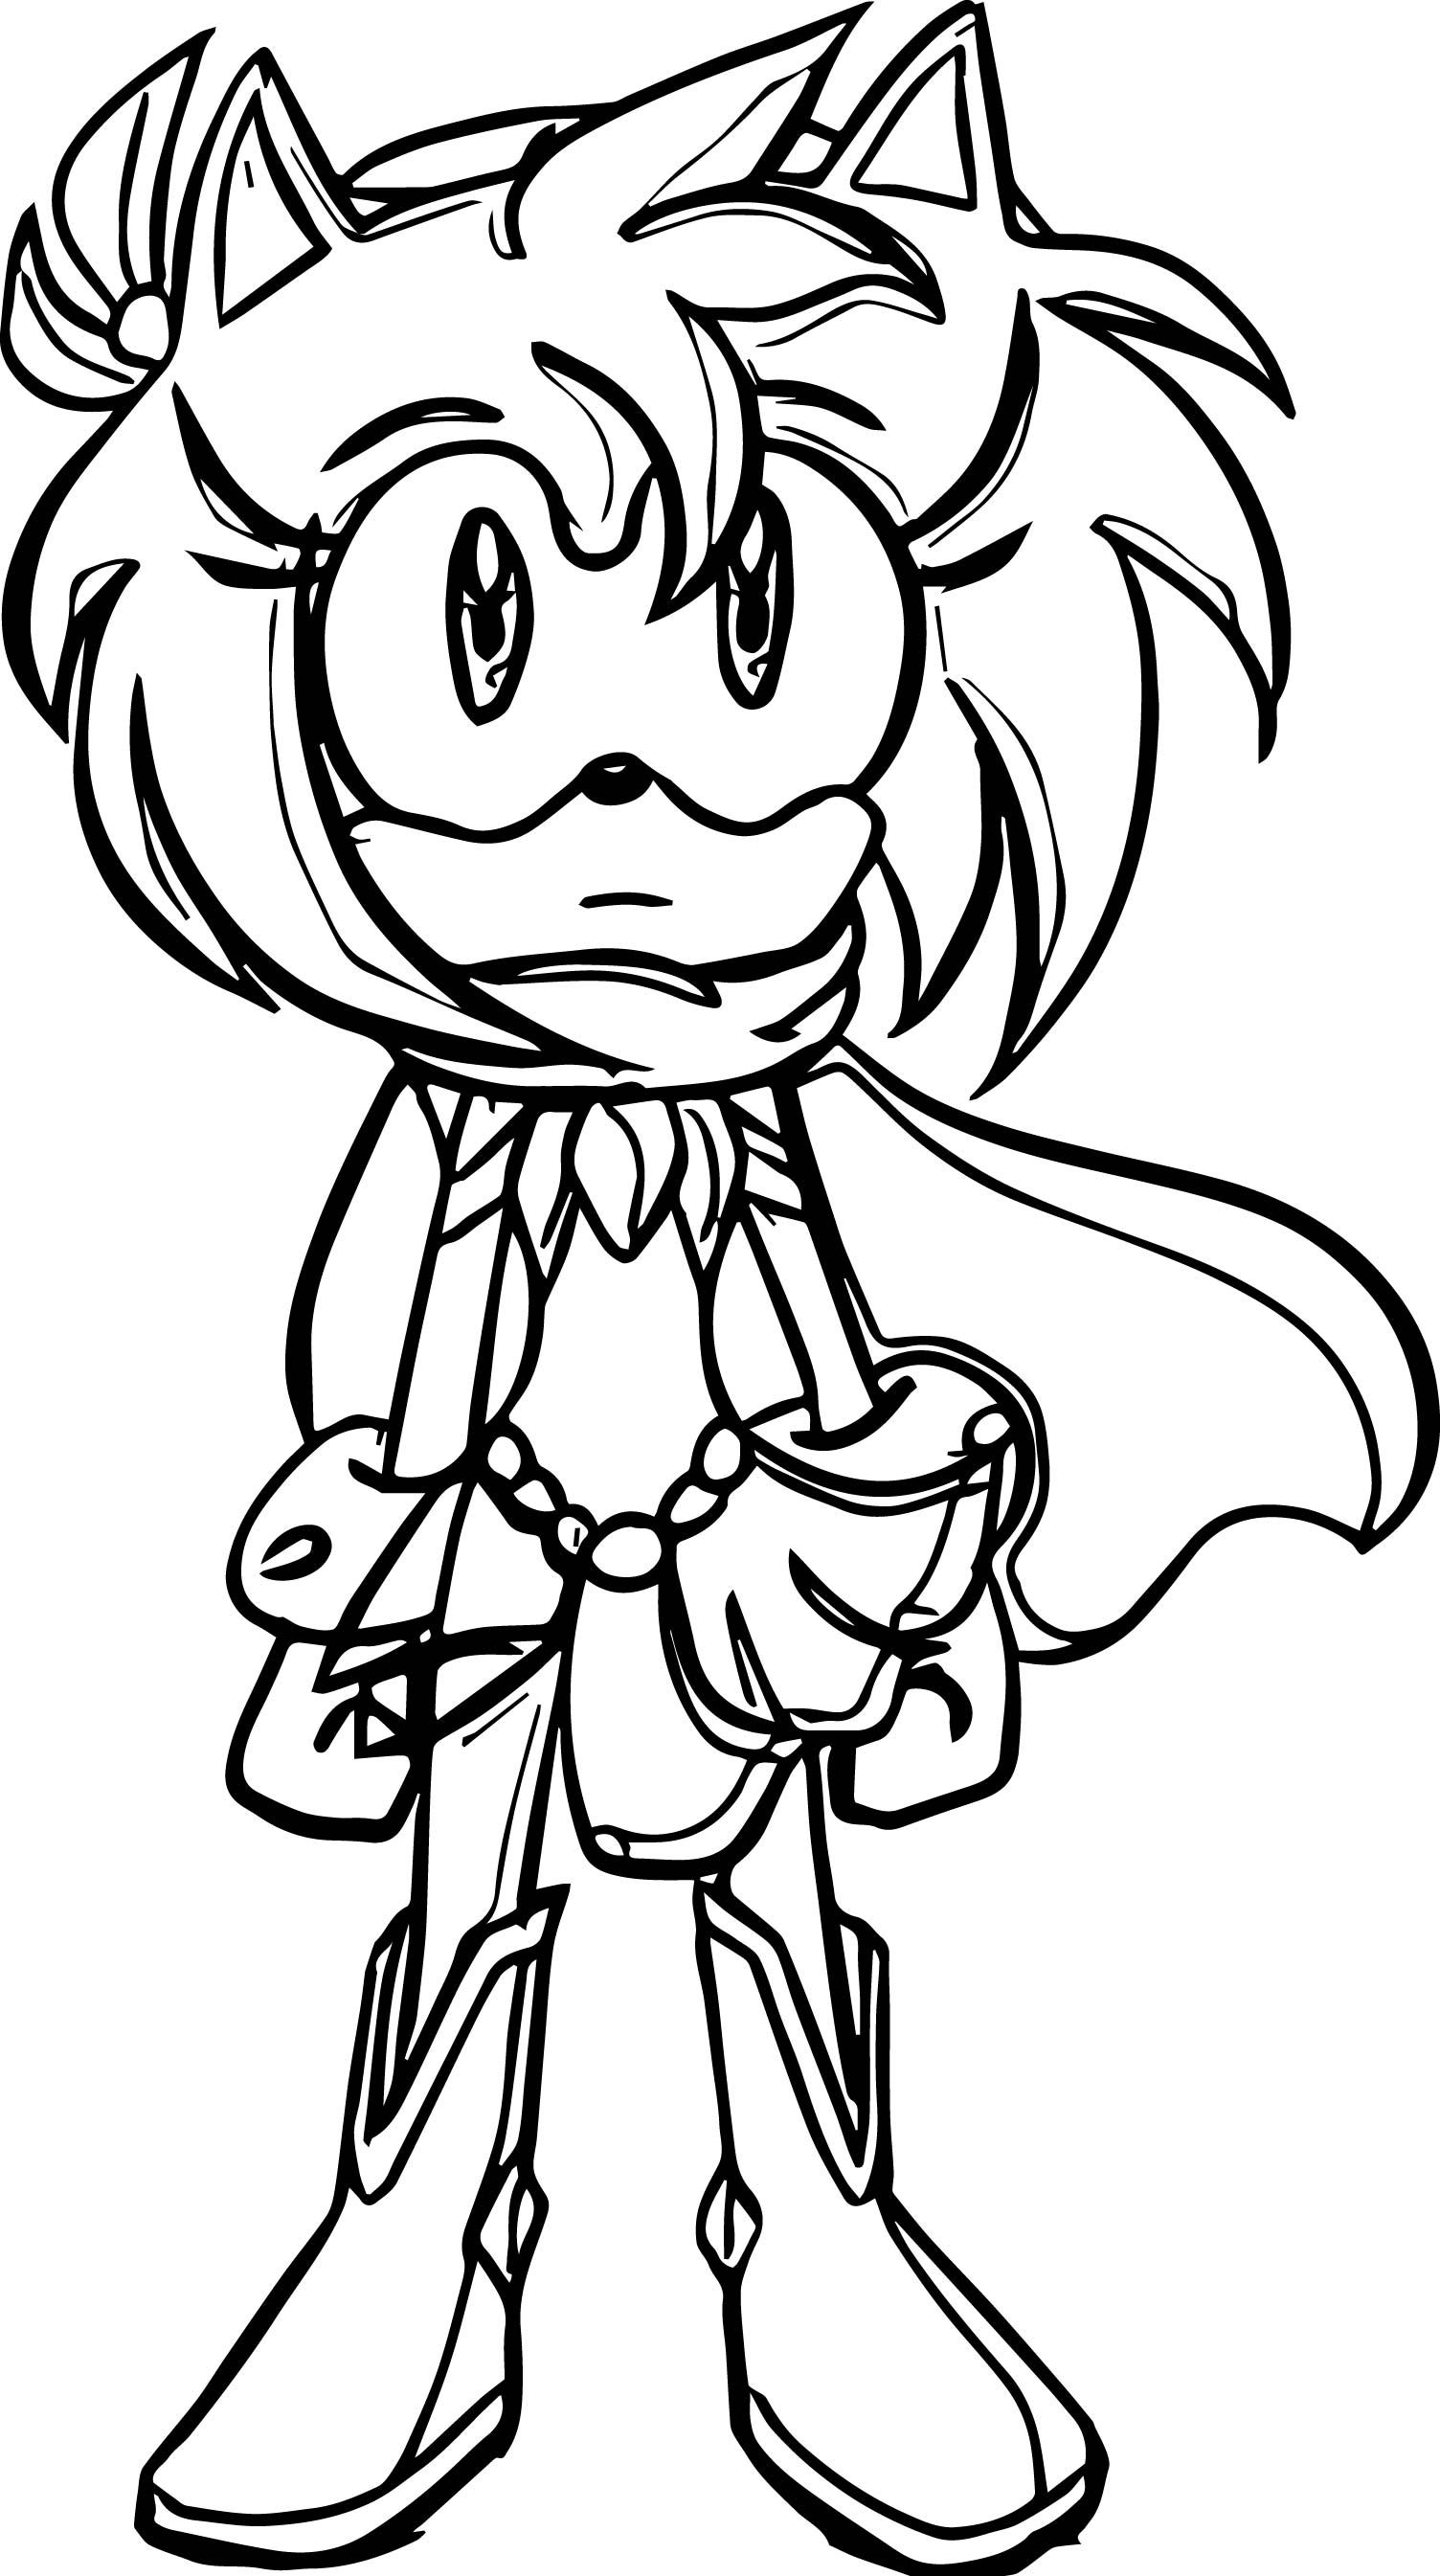 amy rose coloring pages awesome amy rose black dress coloring page amy rose coloring rose amy pages